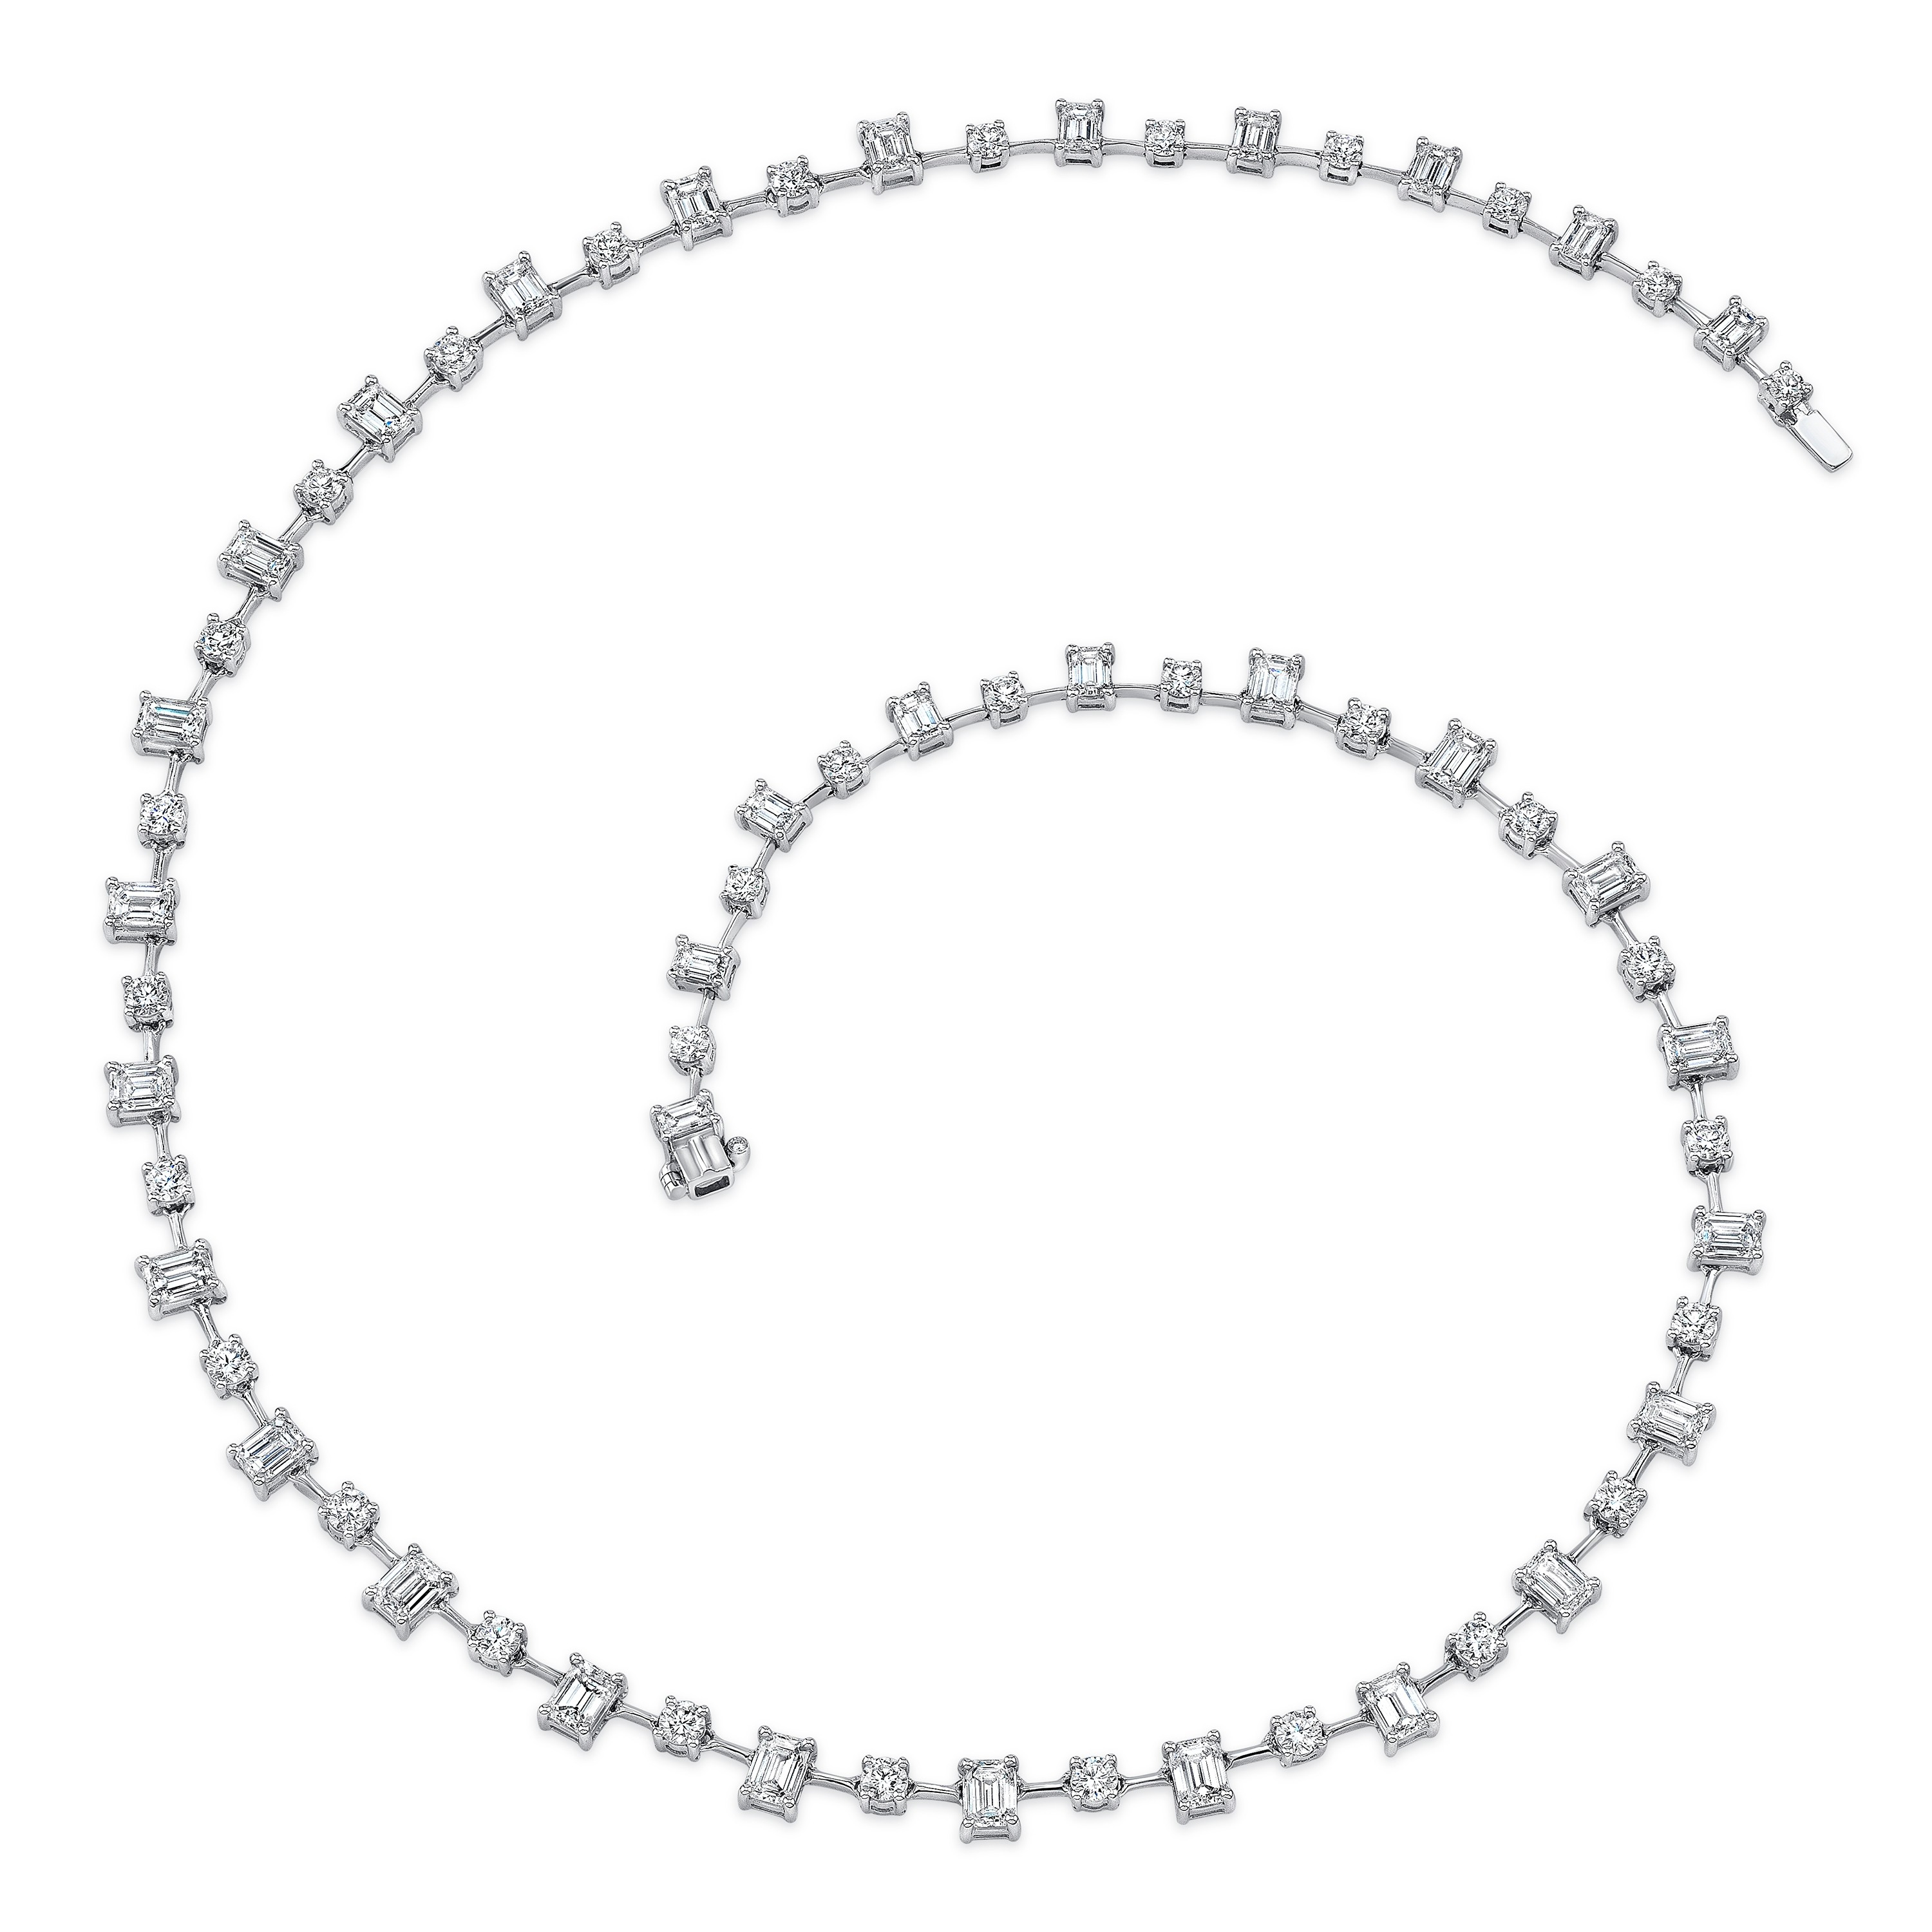 Uneek Round and Emerald Cut Diamond Necklace, in 18K White Gold